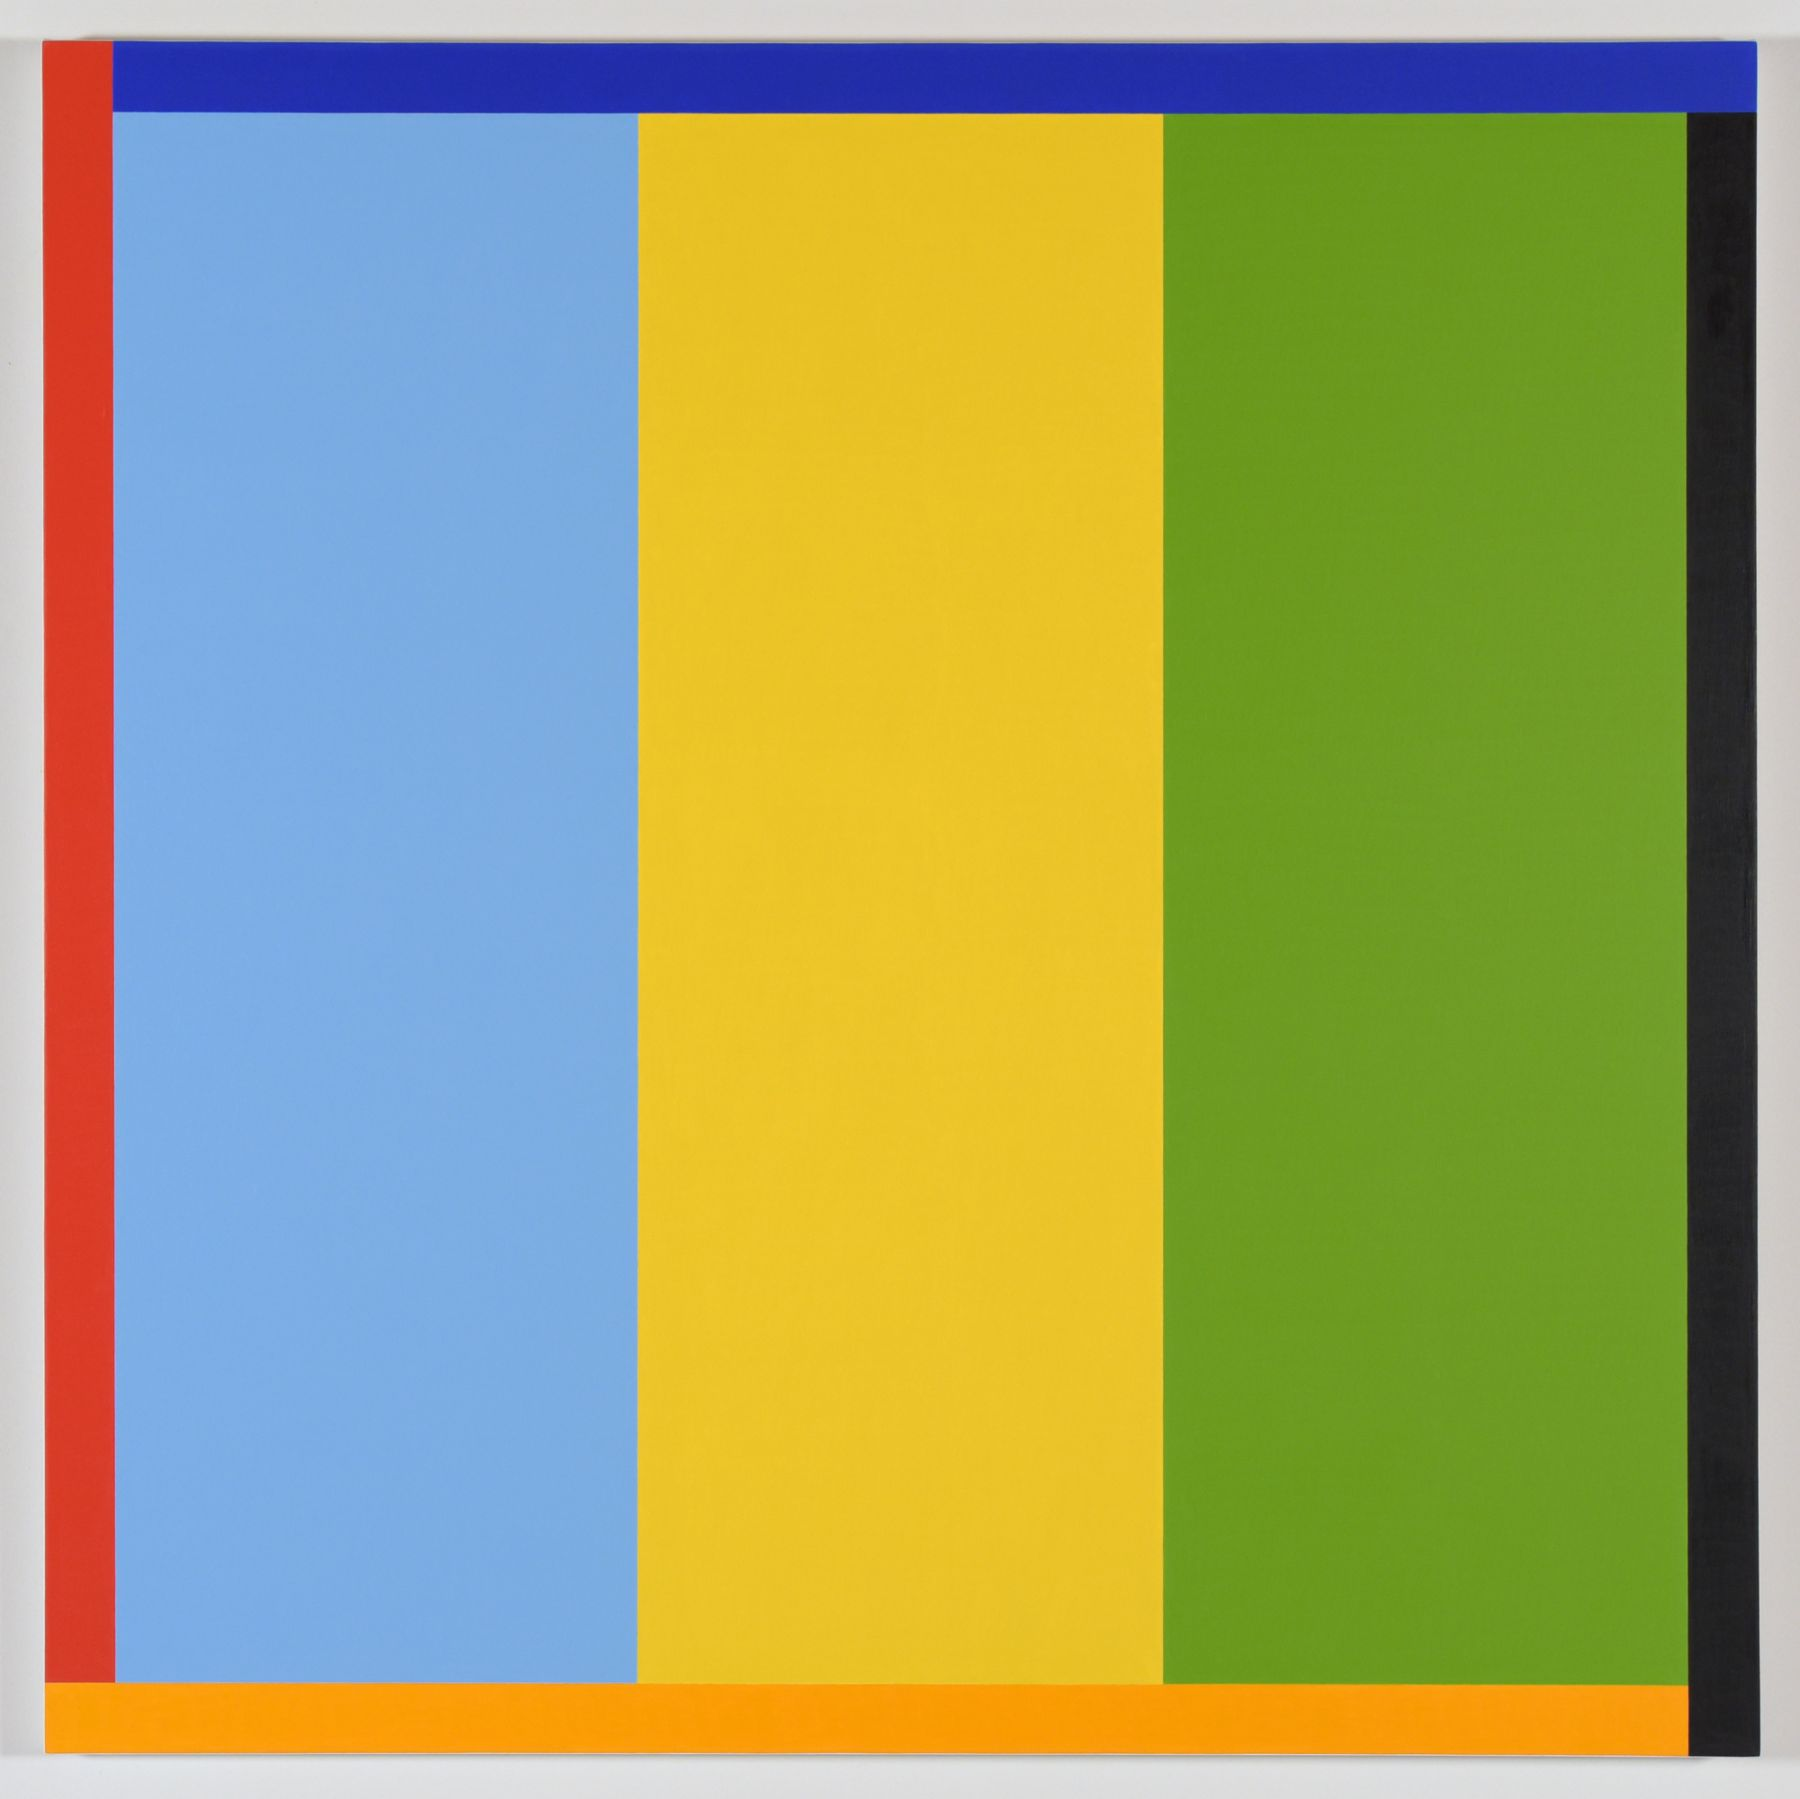 Cary Smith, Stripes #3 (with 4 color border), 2016